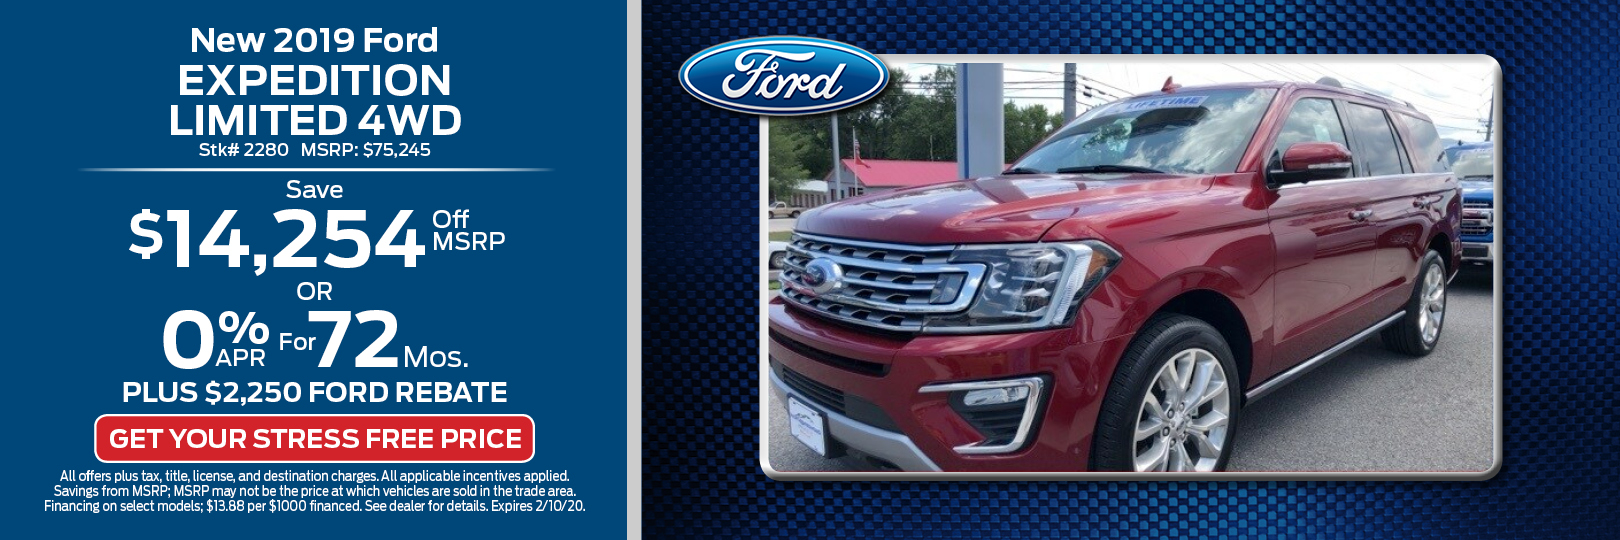 New 2019 Ford Expedition Limited 4WD